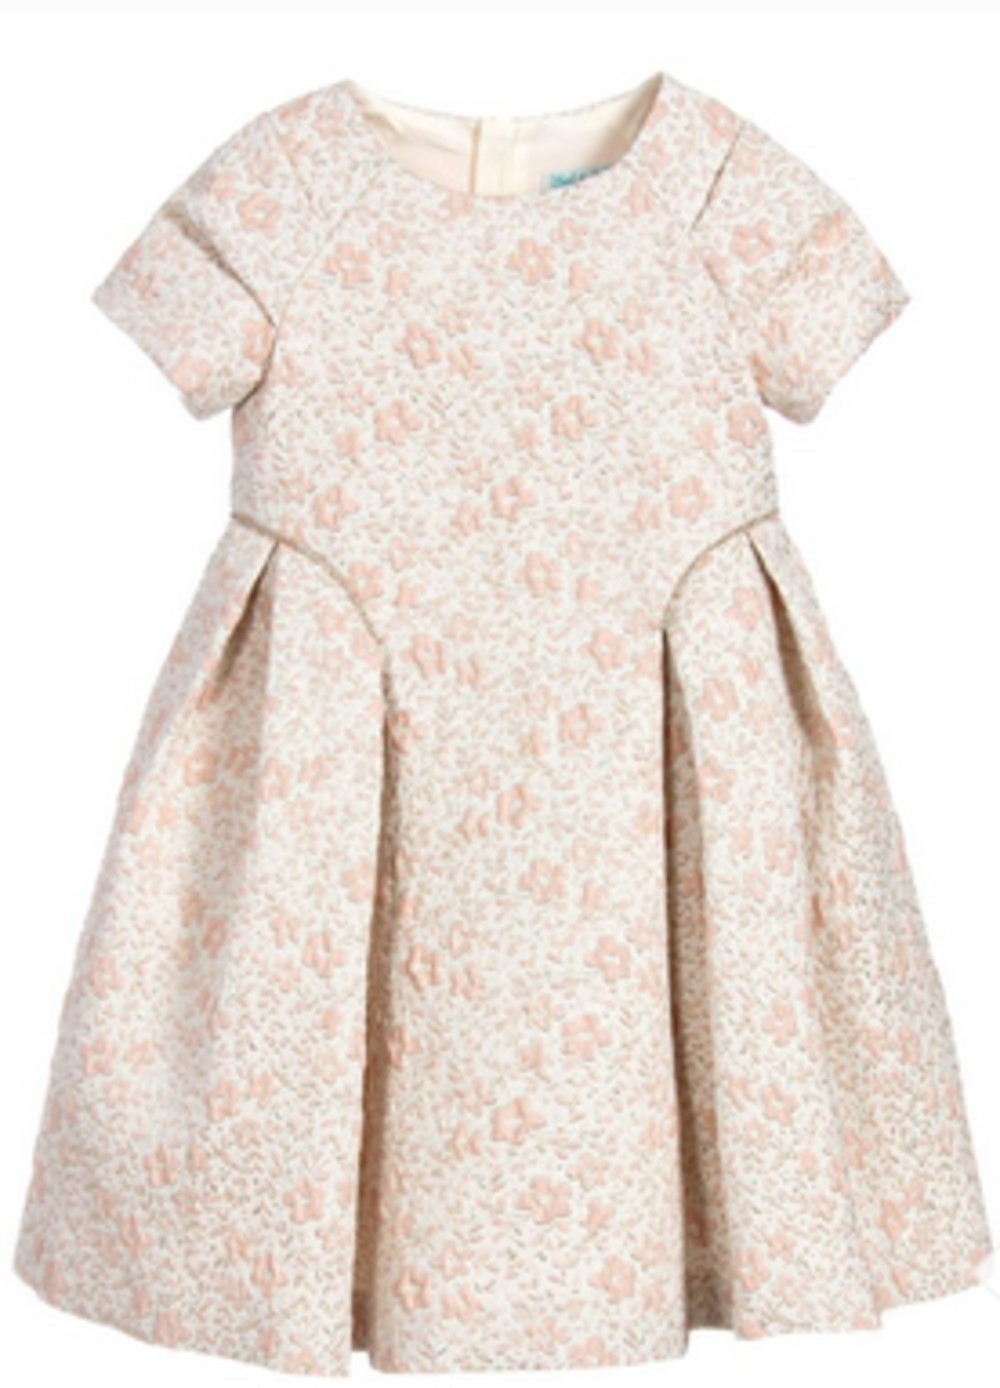 Abel & Lula pink and gold floral jacquard dress